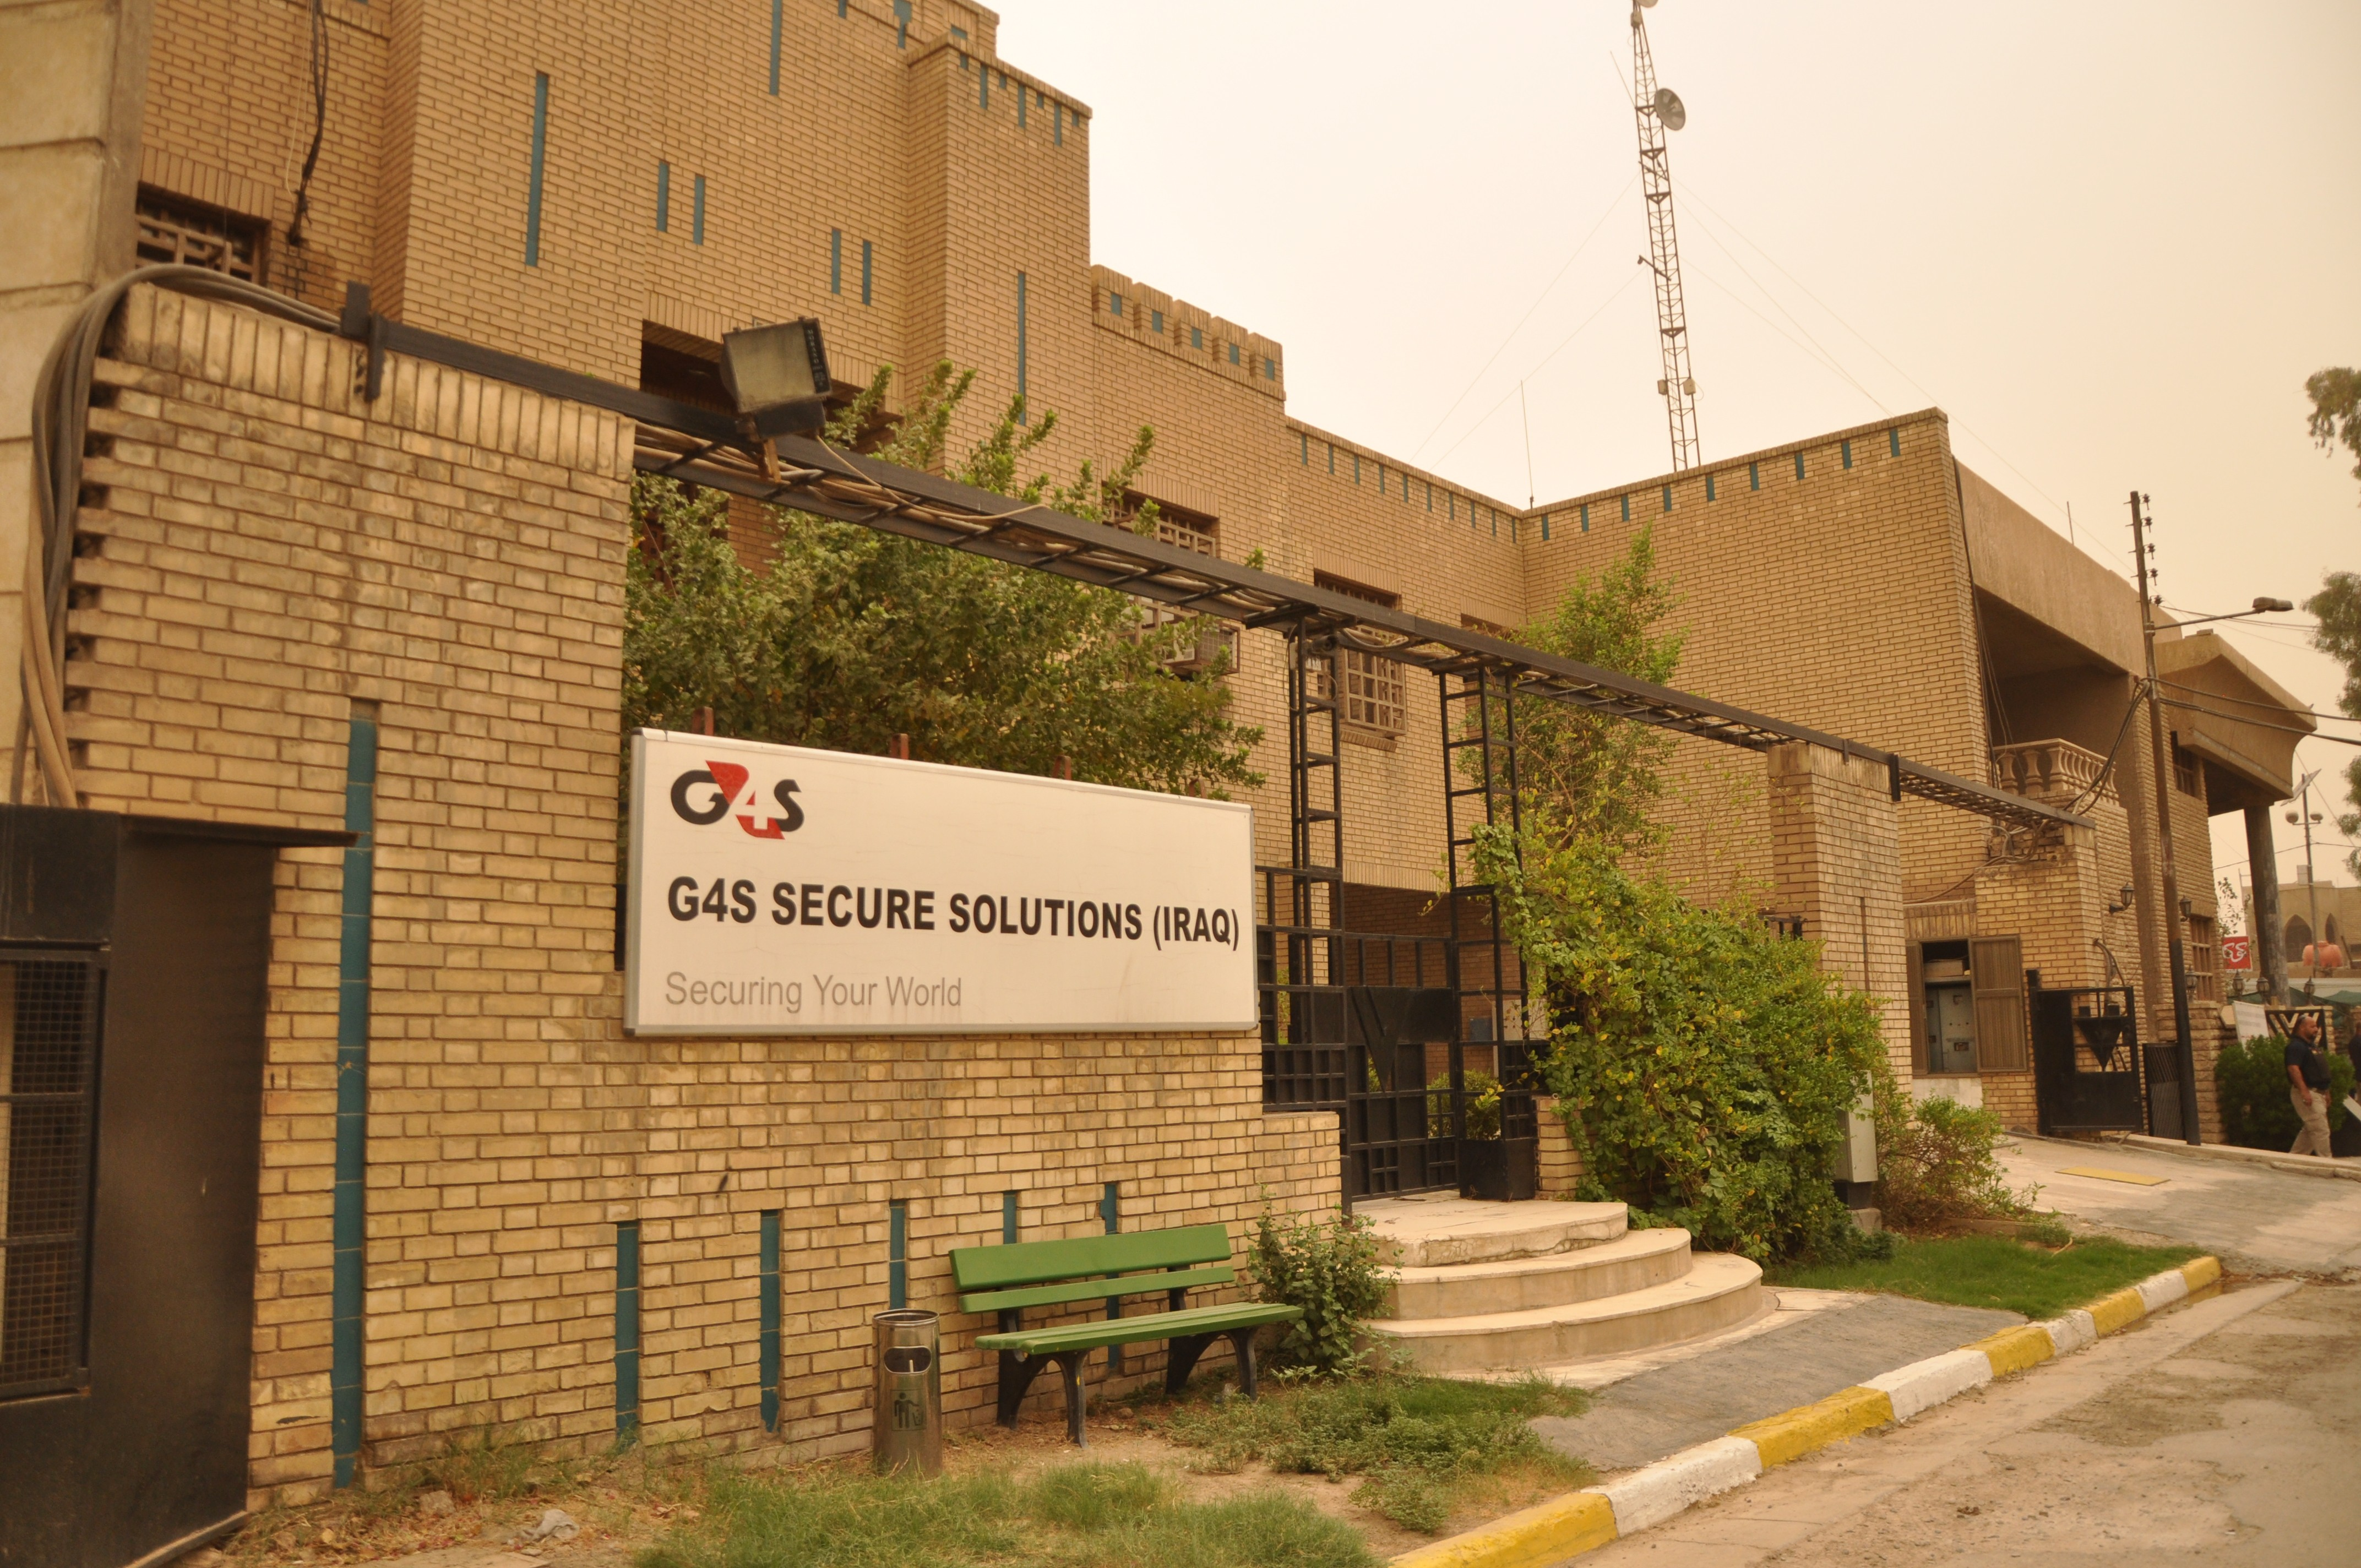 G4S SECURE SOLUTIONS (IRAQ) LIMITED   LinkedIn